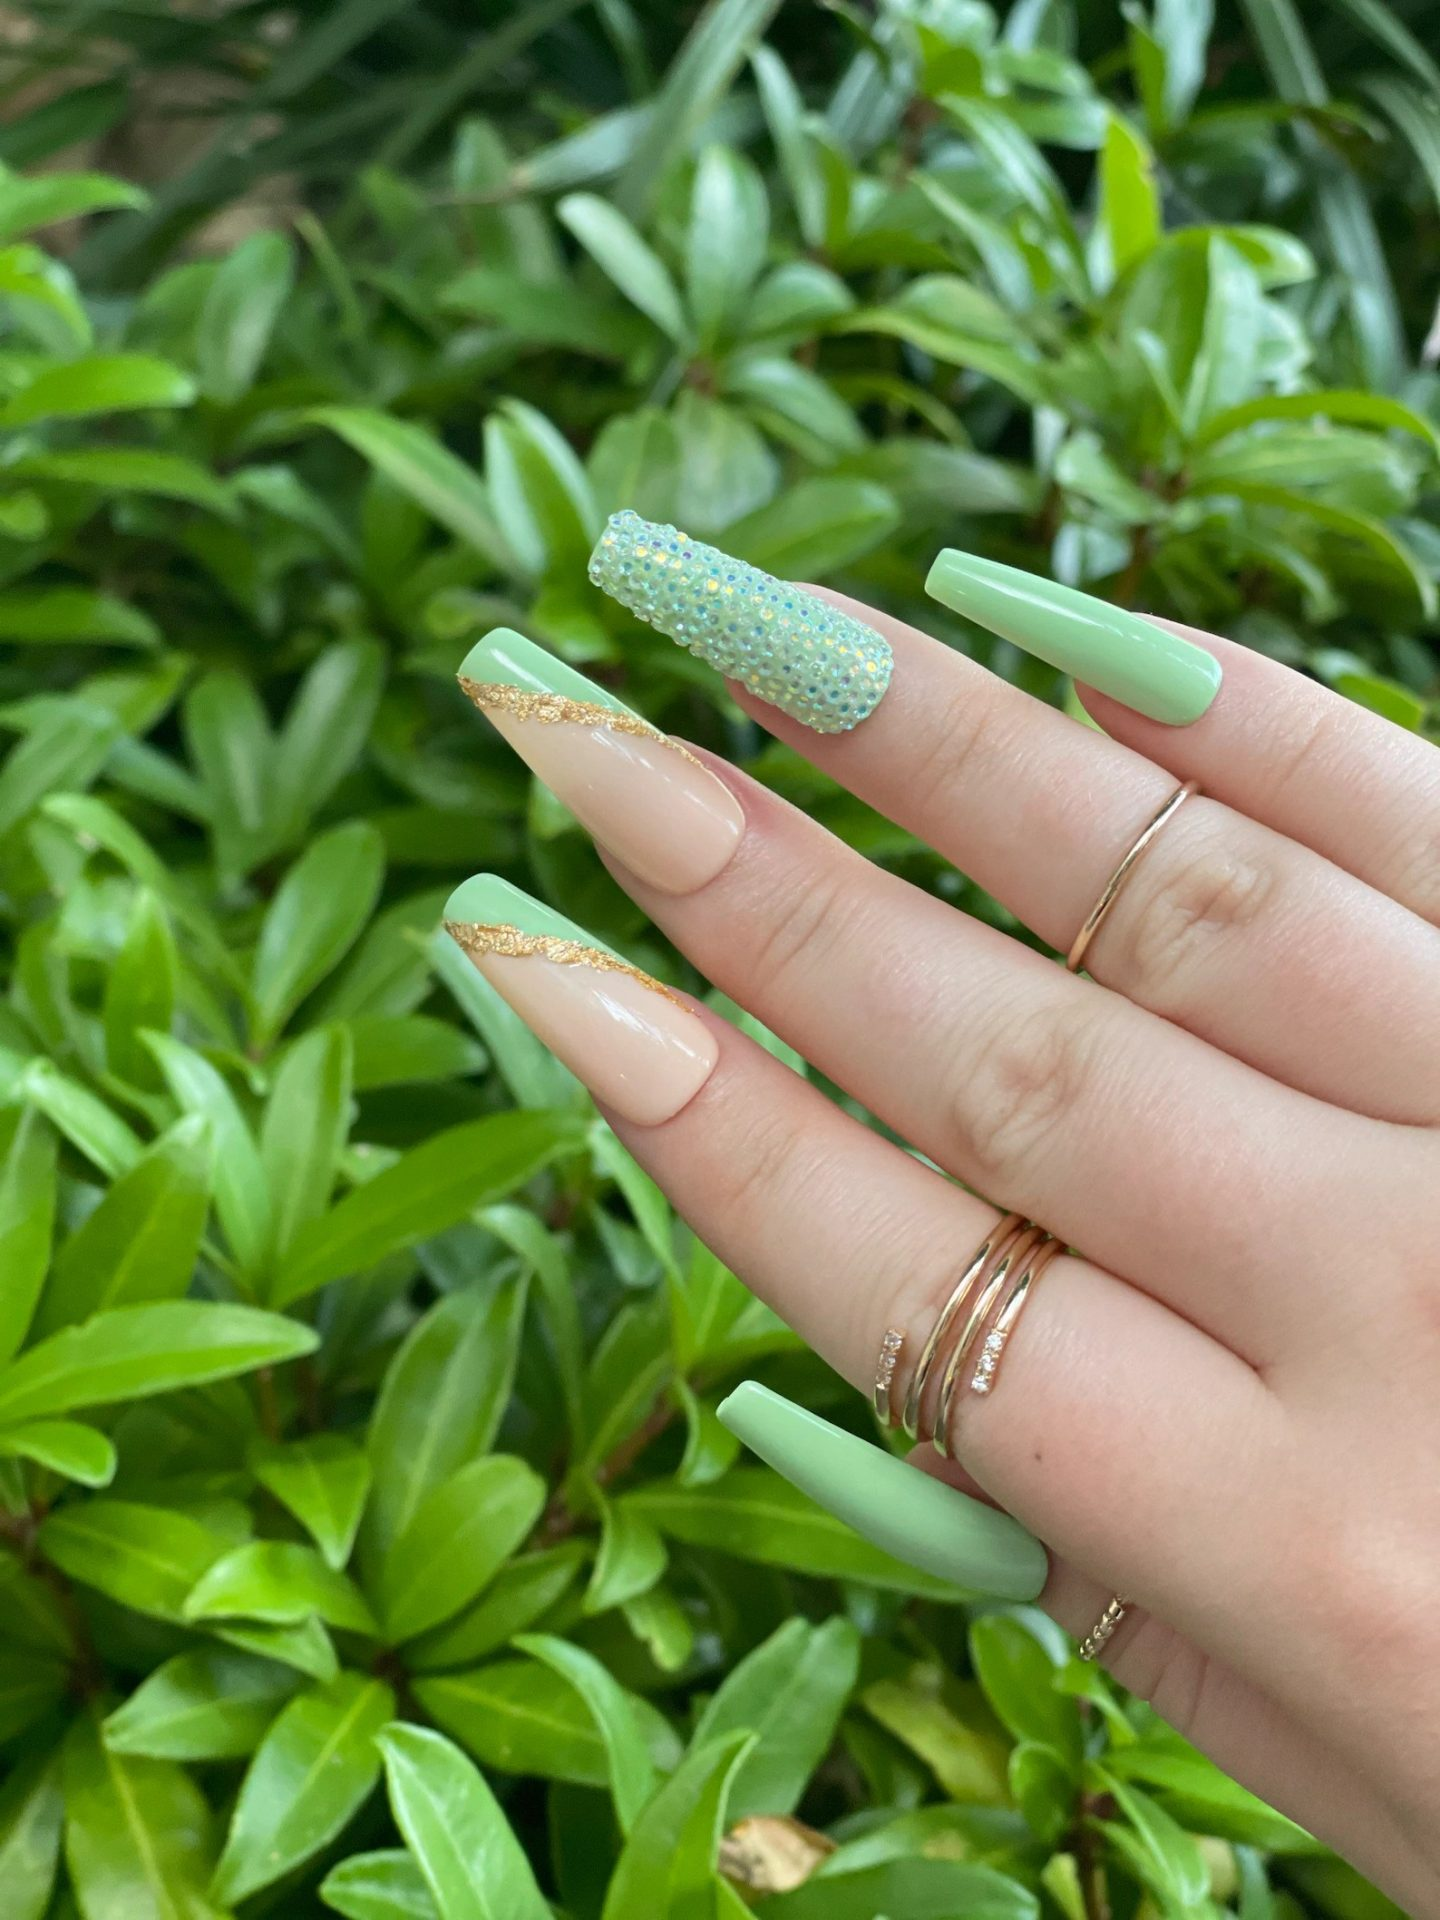 Sage green coffin nails with rhinestones